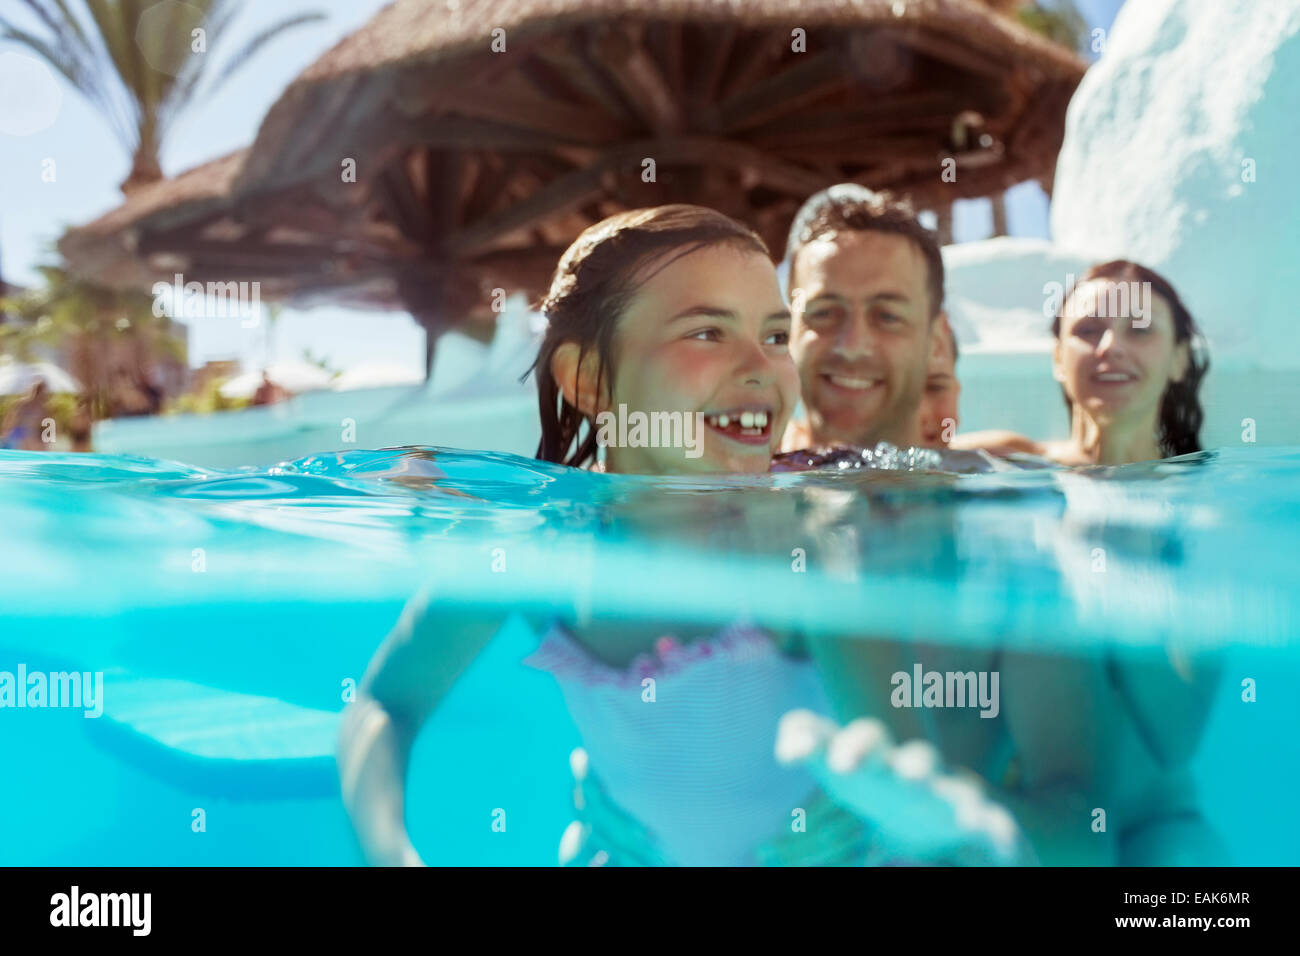 Family with two children in swimming pool on vacation - Stock Image